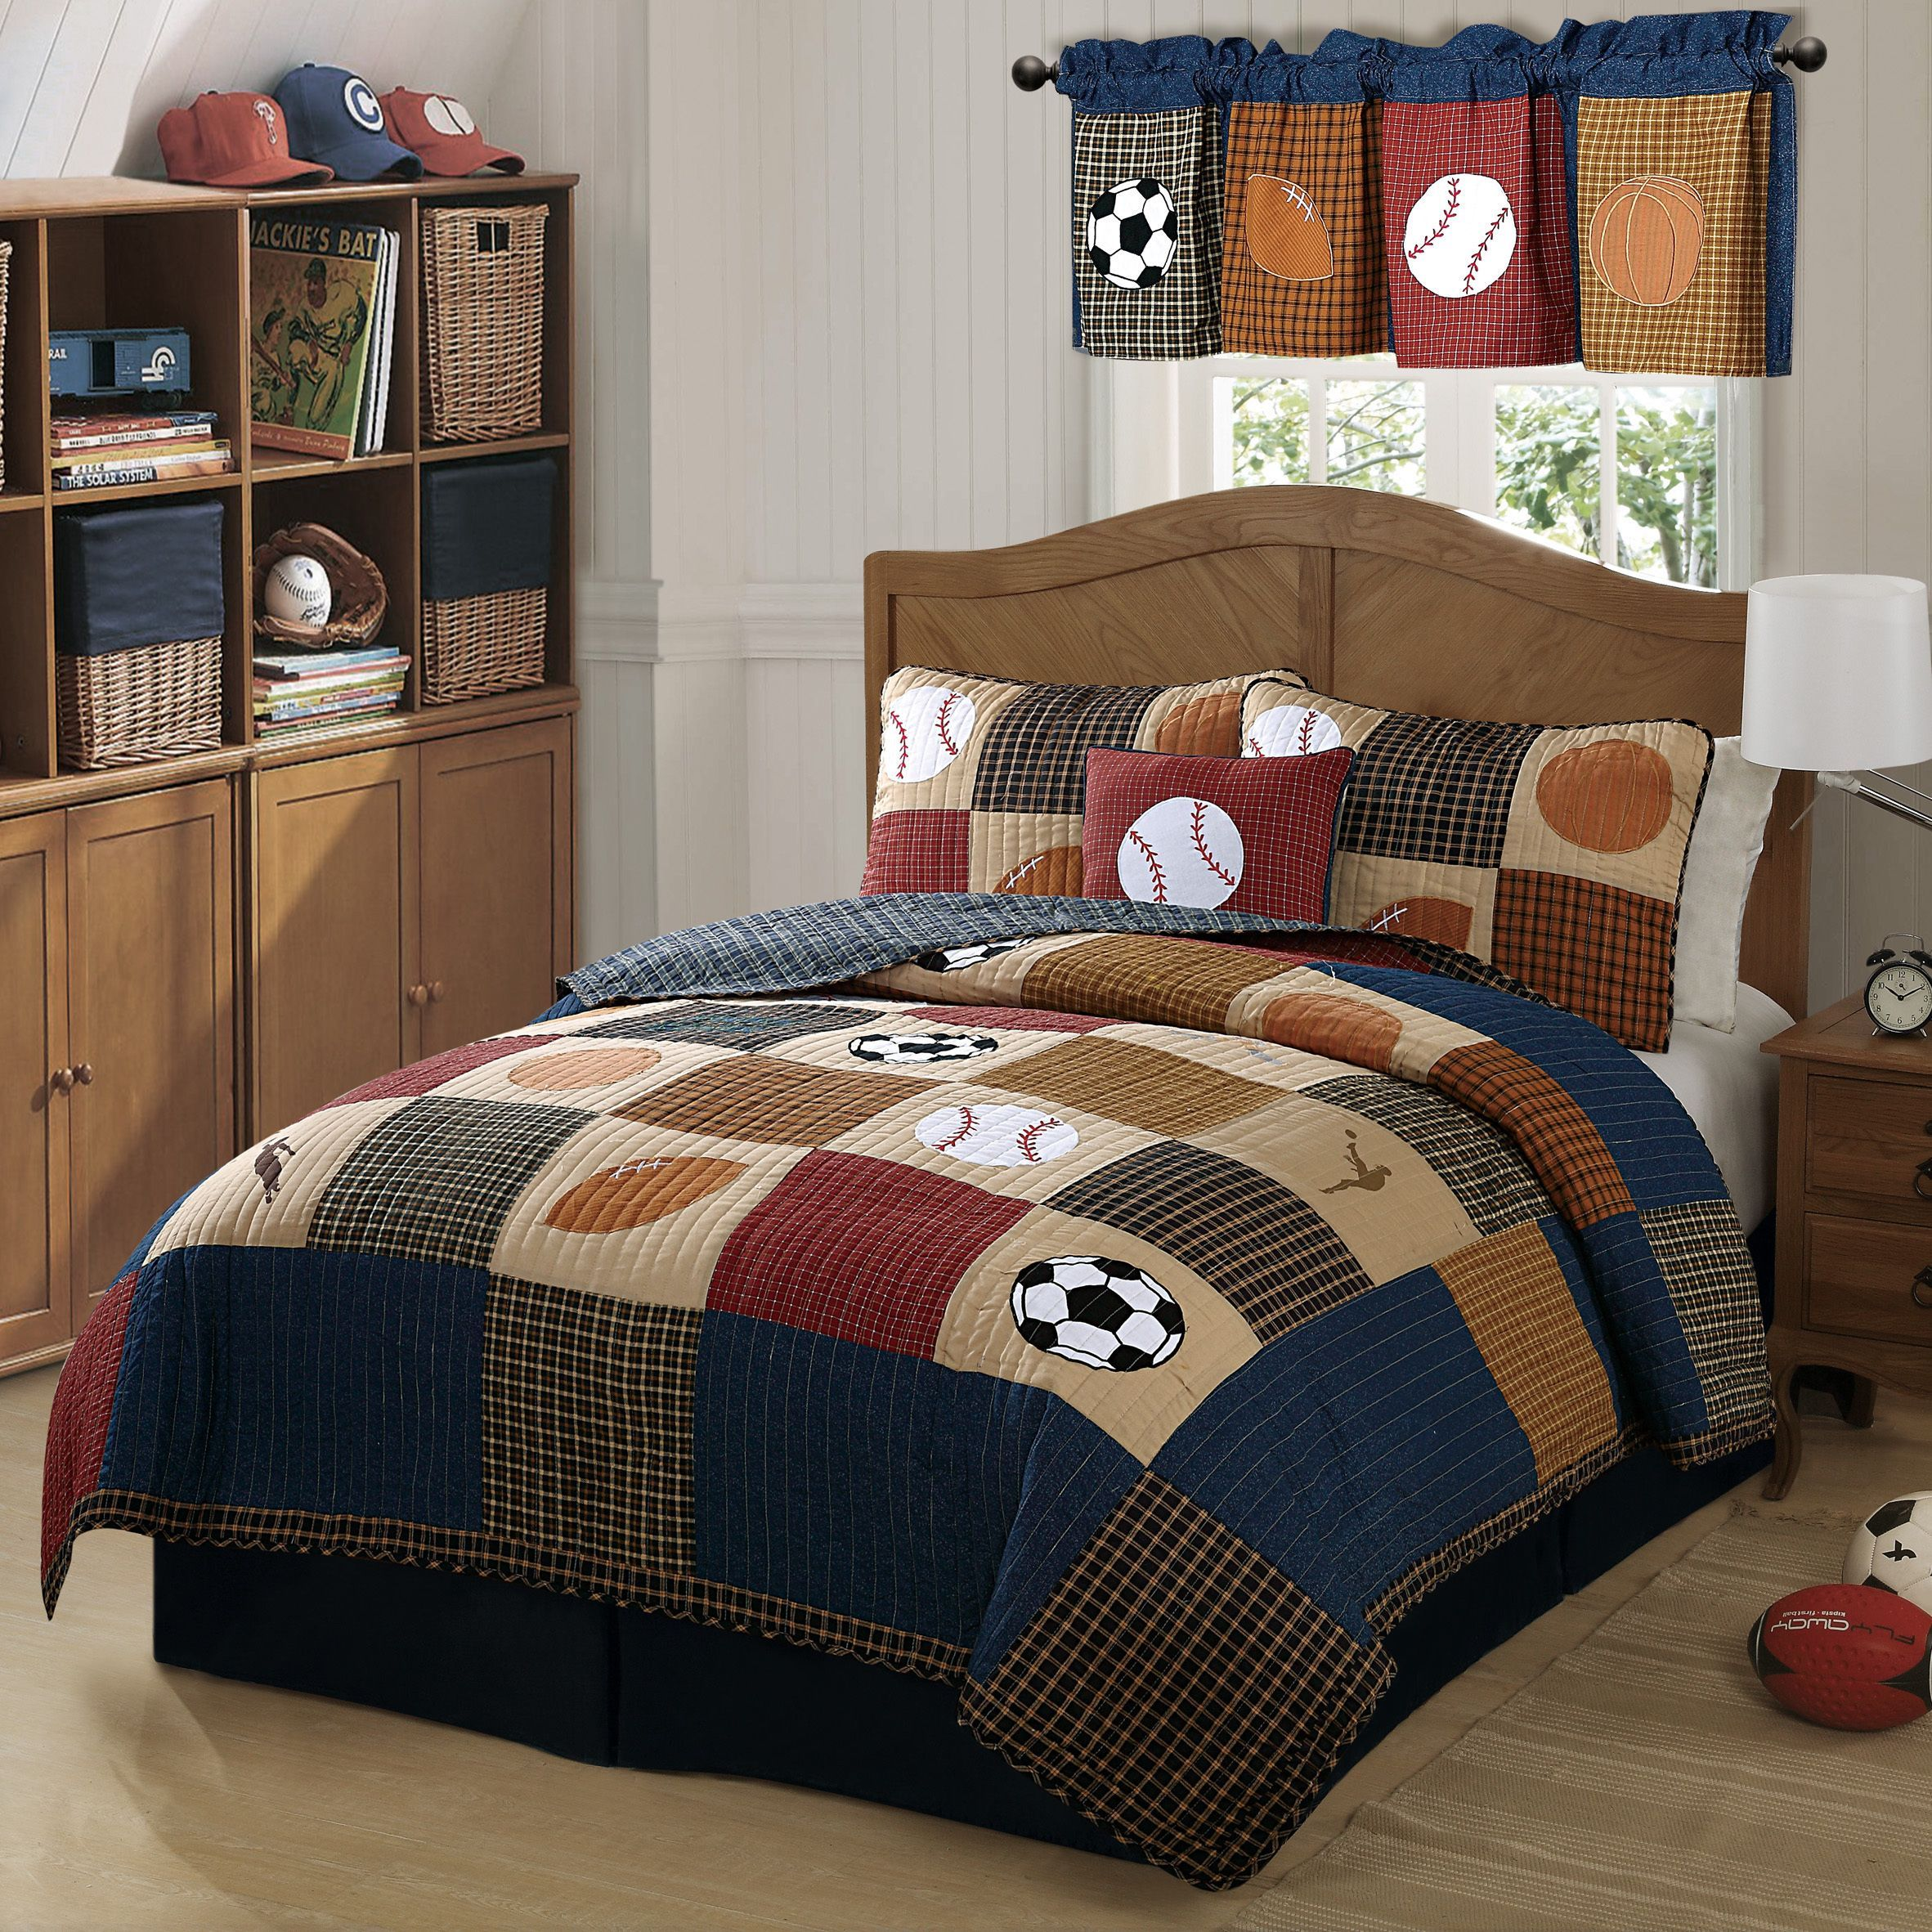 laura hart kids classic sports quilt mini set | colchas y mas